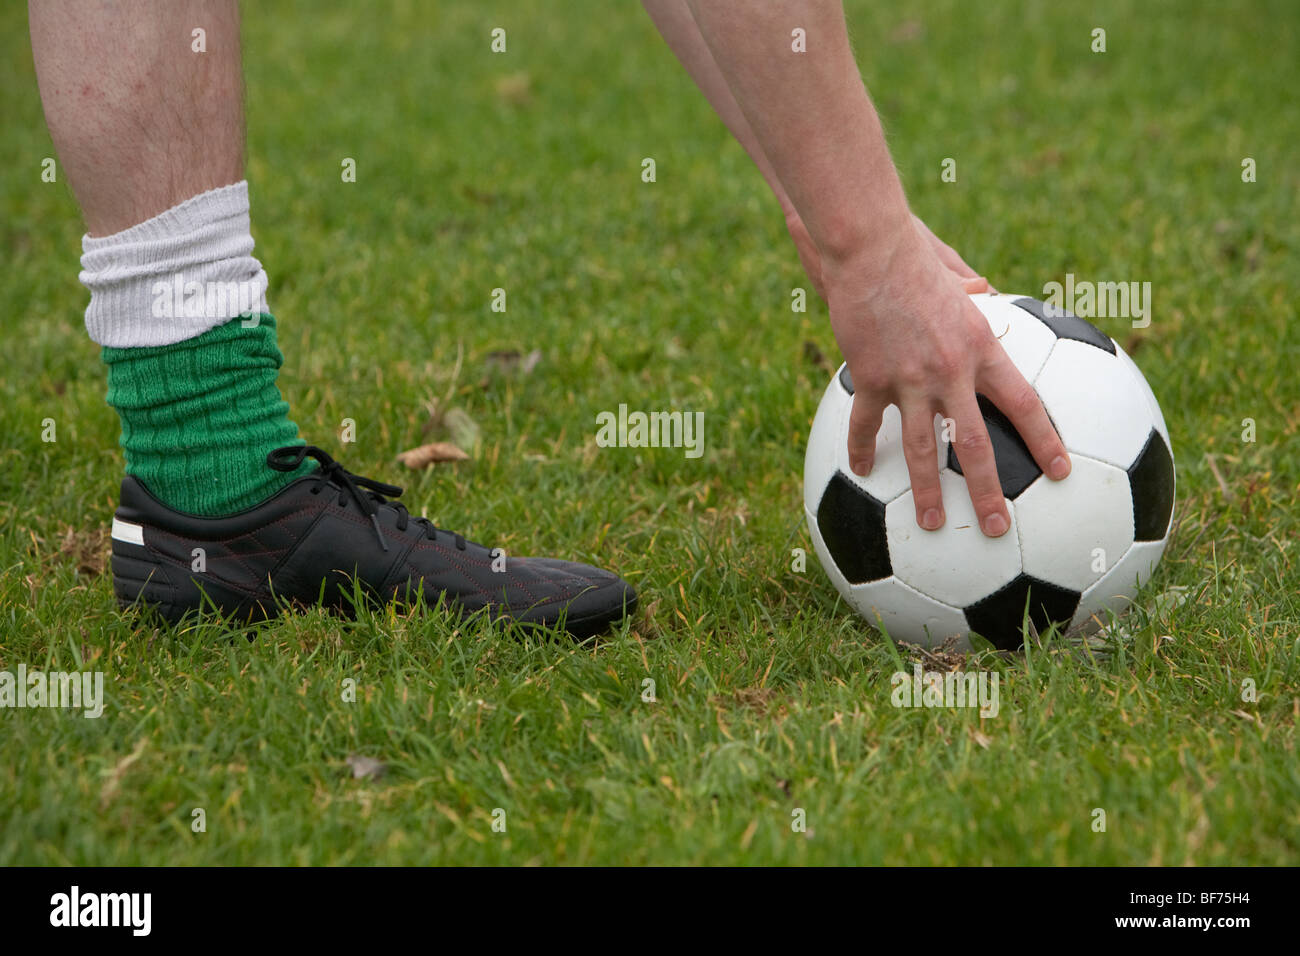 soccer football player placing the ball down for a kick - Stock Image